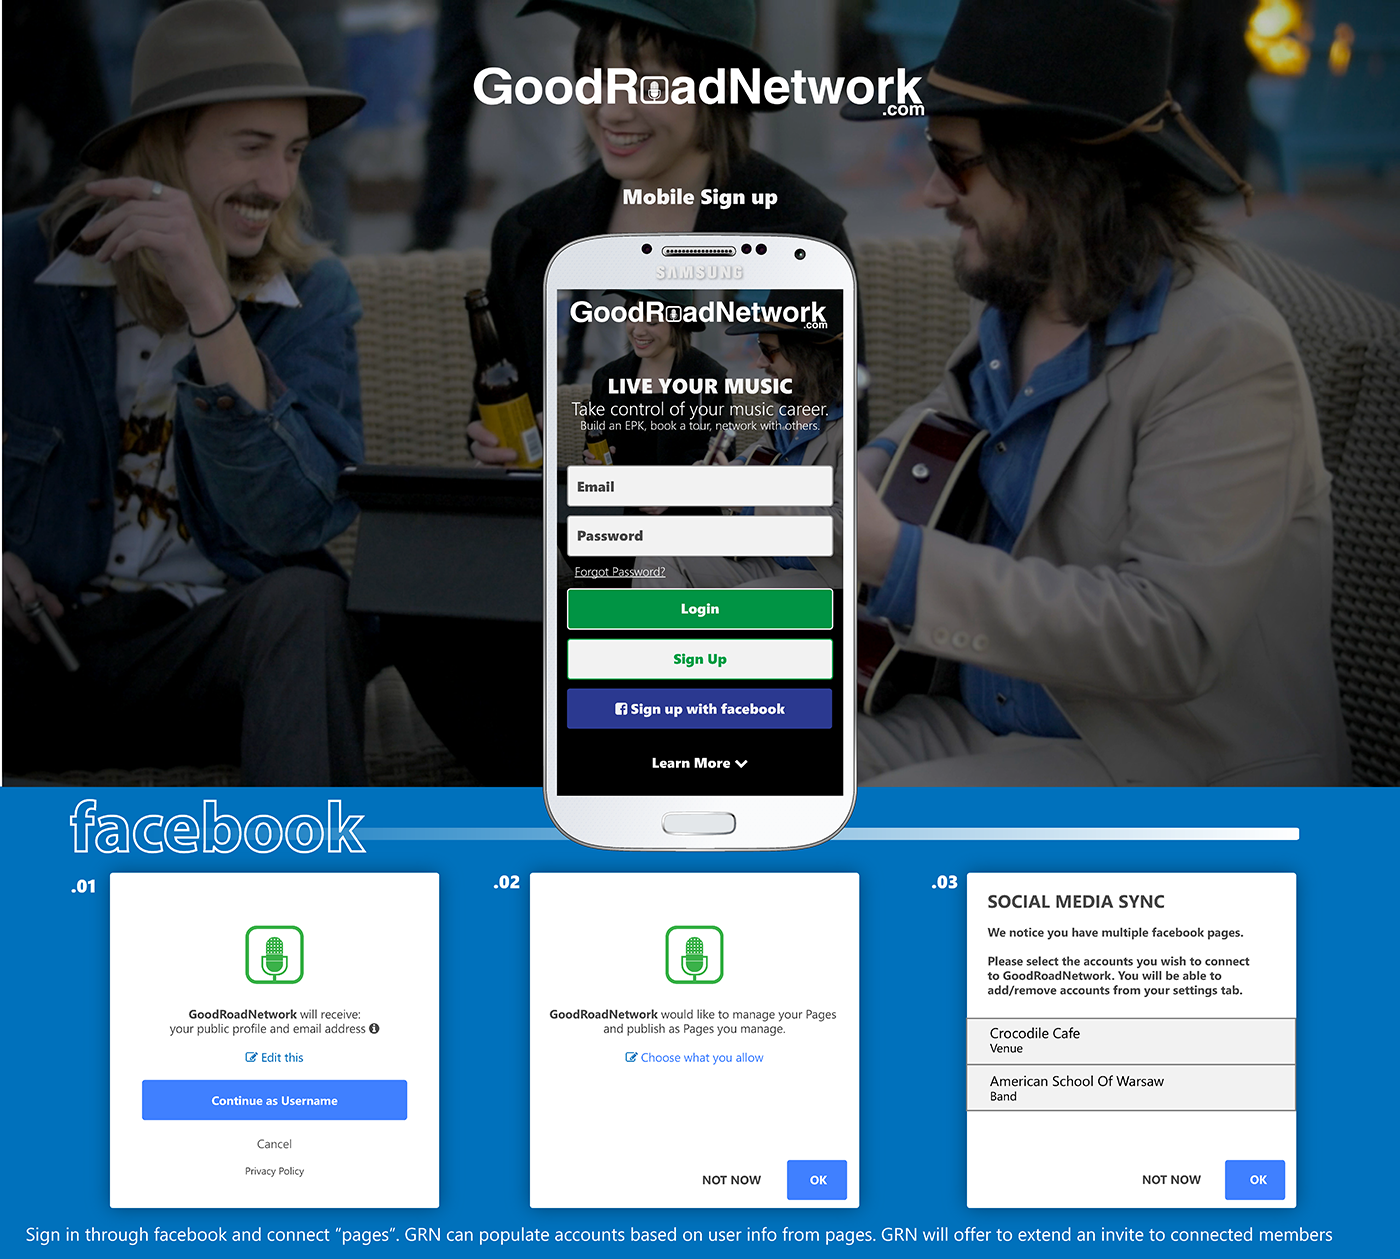 GoodRoadNetwork - Integrating facebook for validation and pre building profile. This is a sample screen from that outline.